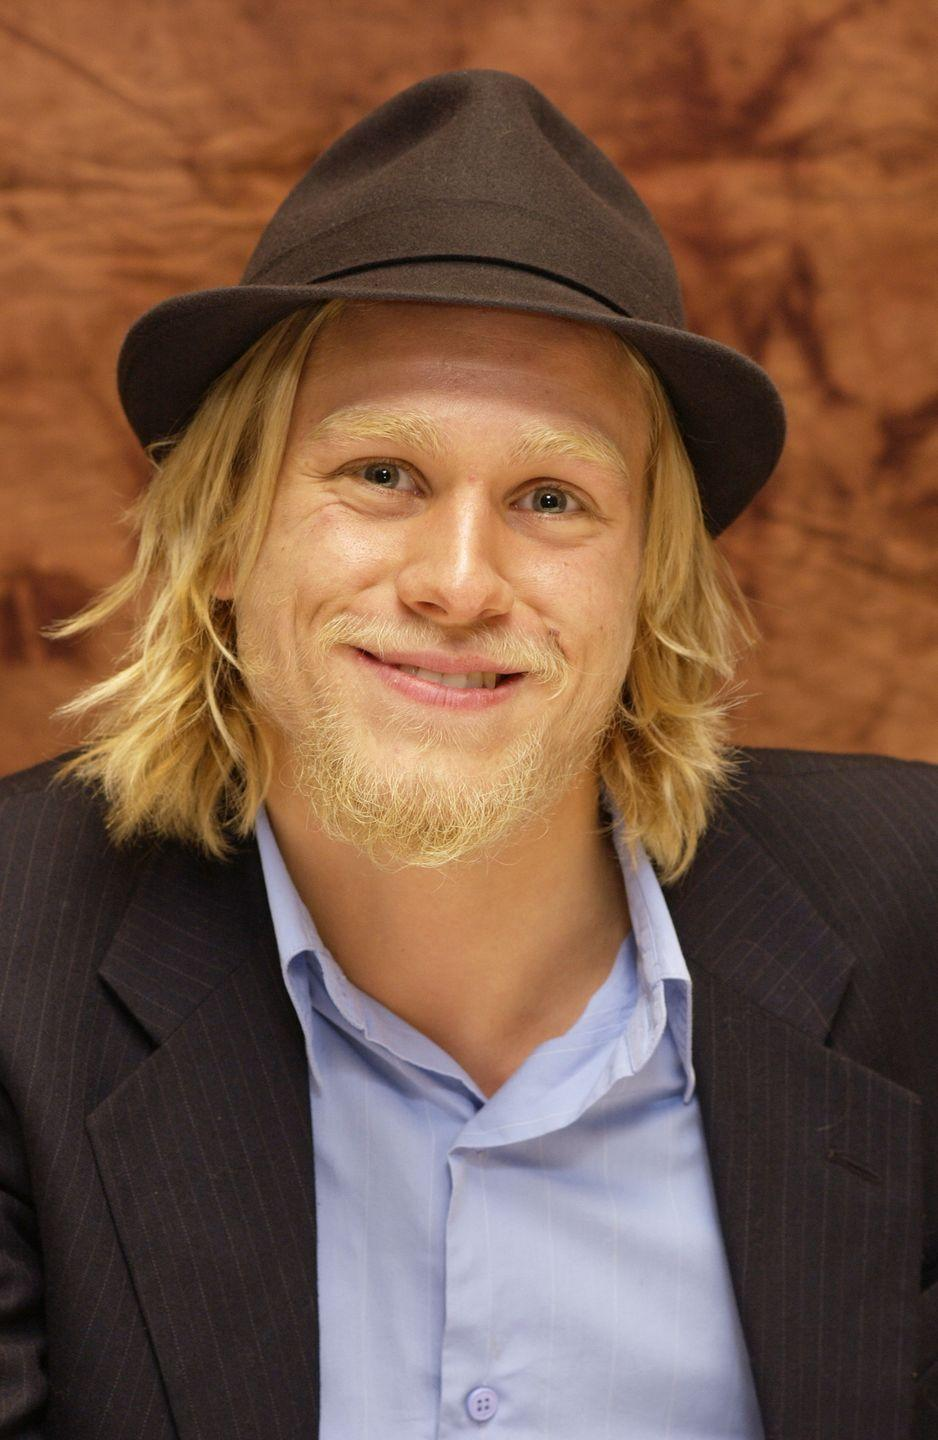 <p>Charlie Hunnam usually keeps his hair chopped short, but the actor let his blonde hair and beard grow out in 2002 for his role in <em>Nicholas Nickleby</em>. </p>